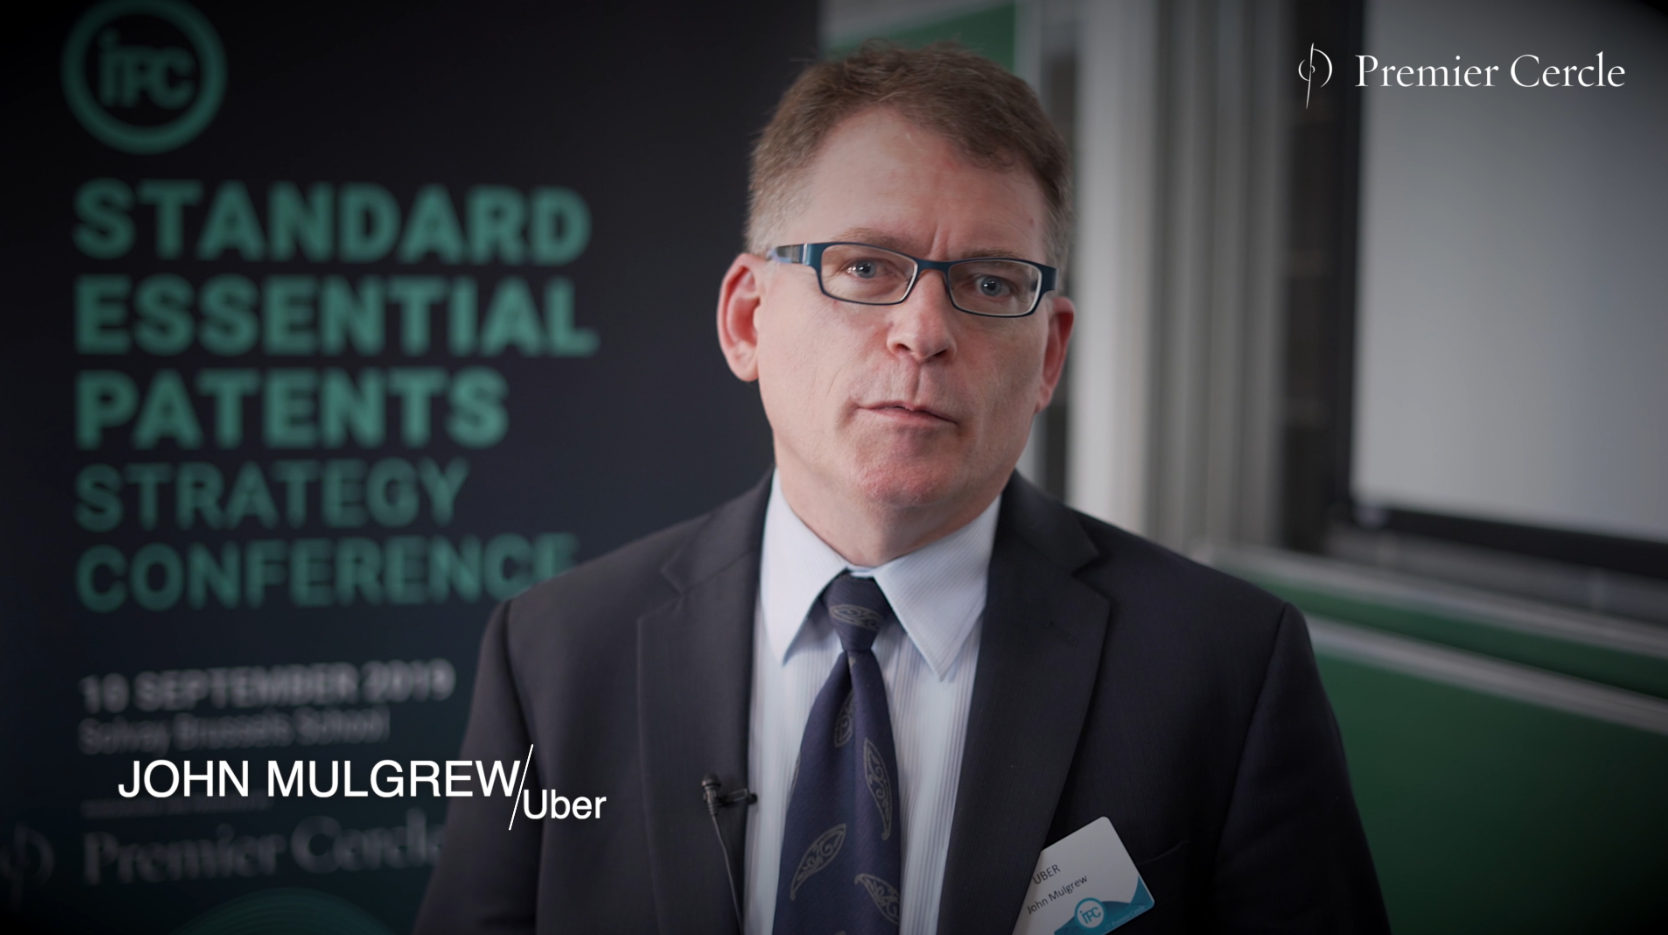 John Mulgrew, Associate General Counsel & Global Head of IP at UBER interviewed by Premier Cercle